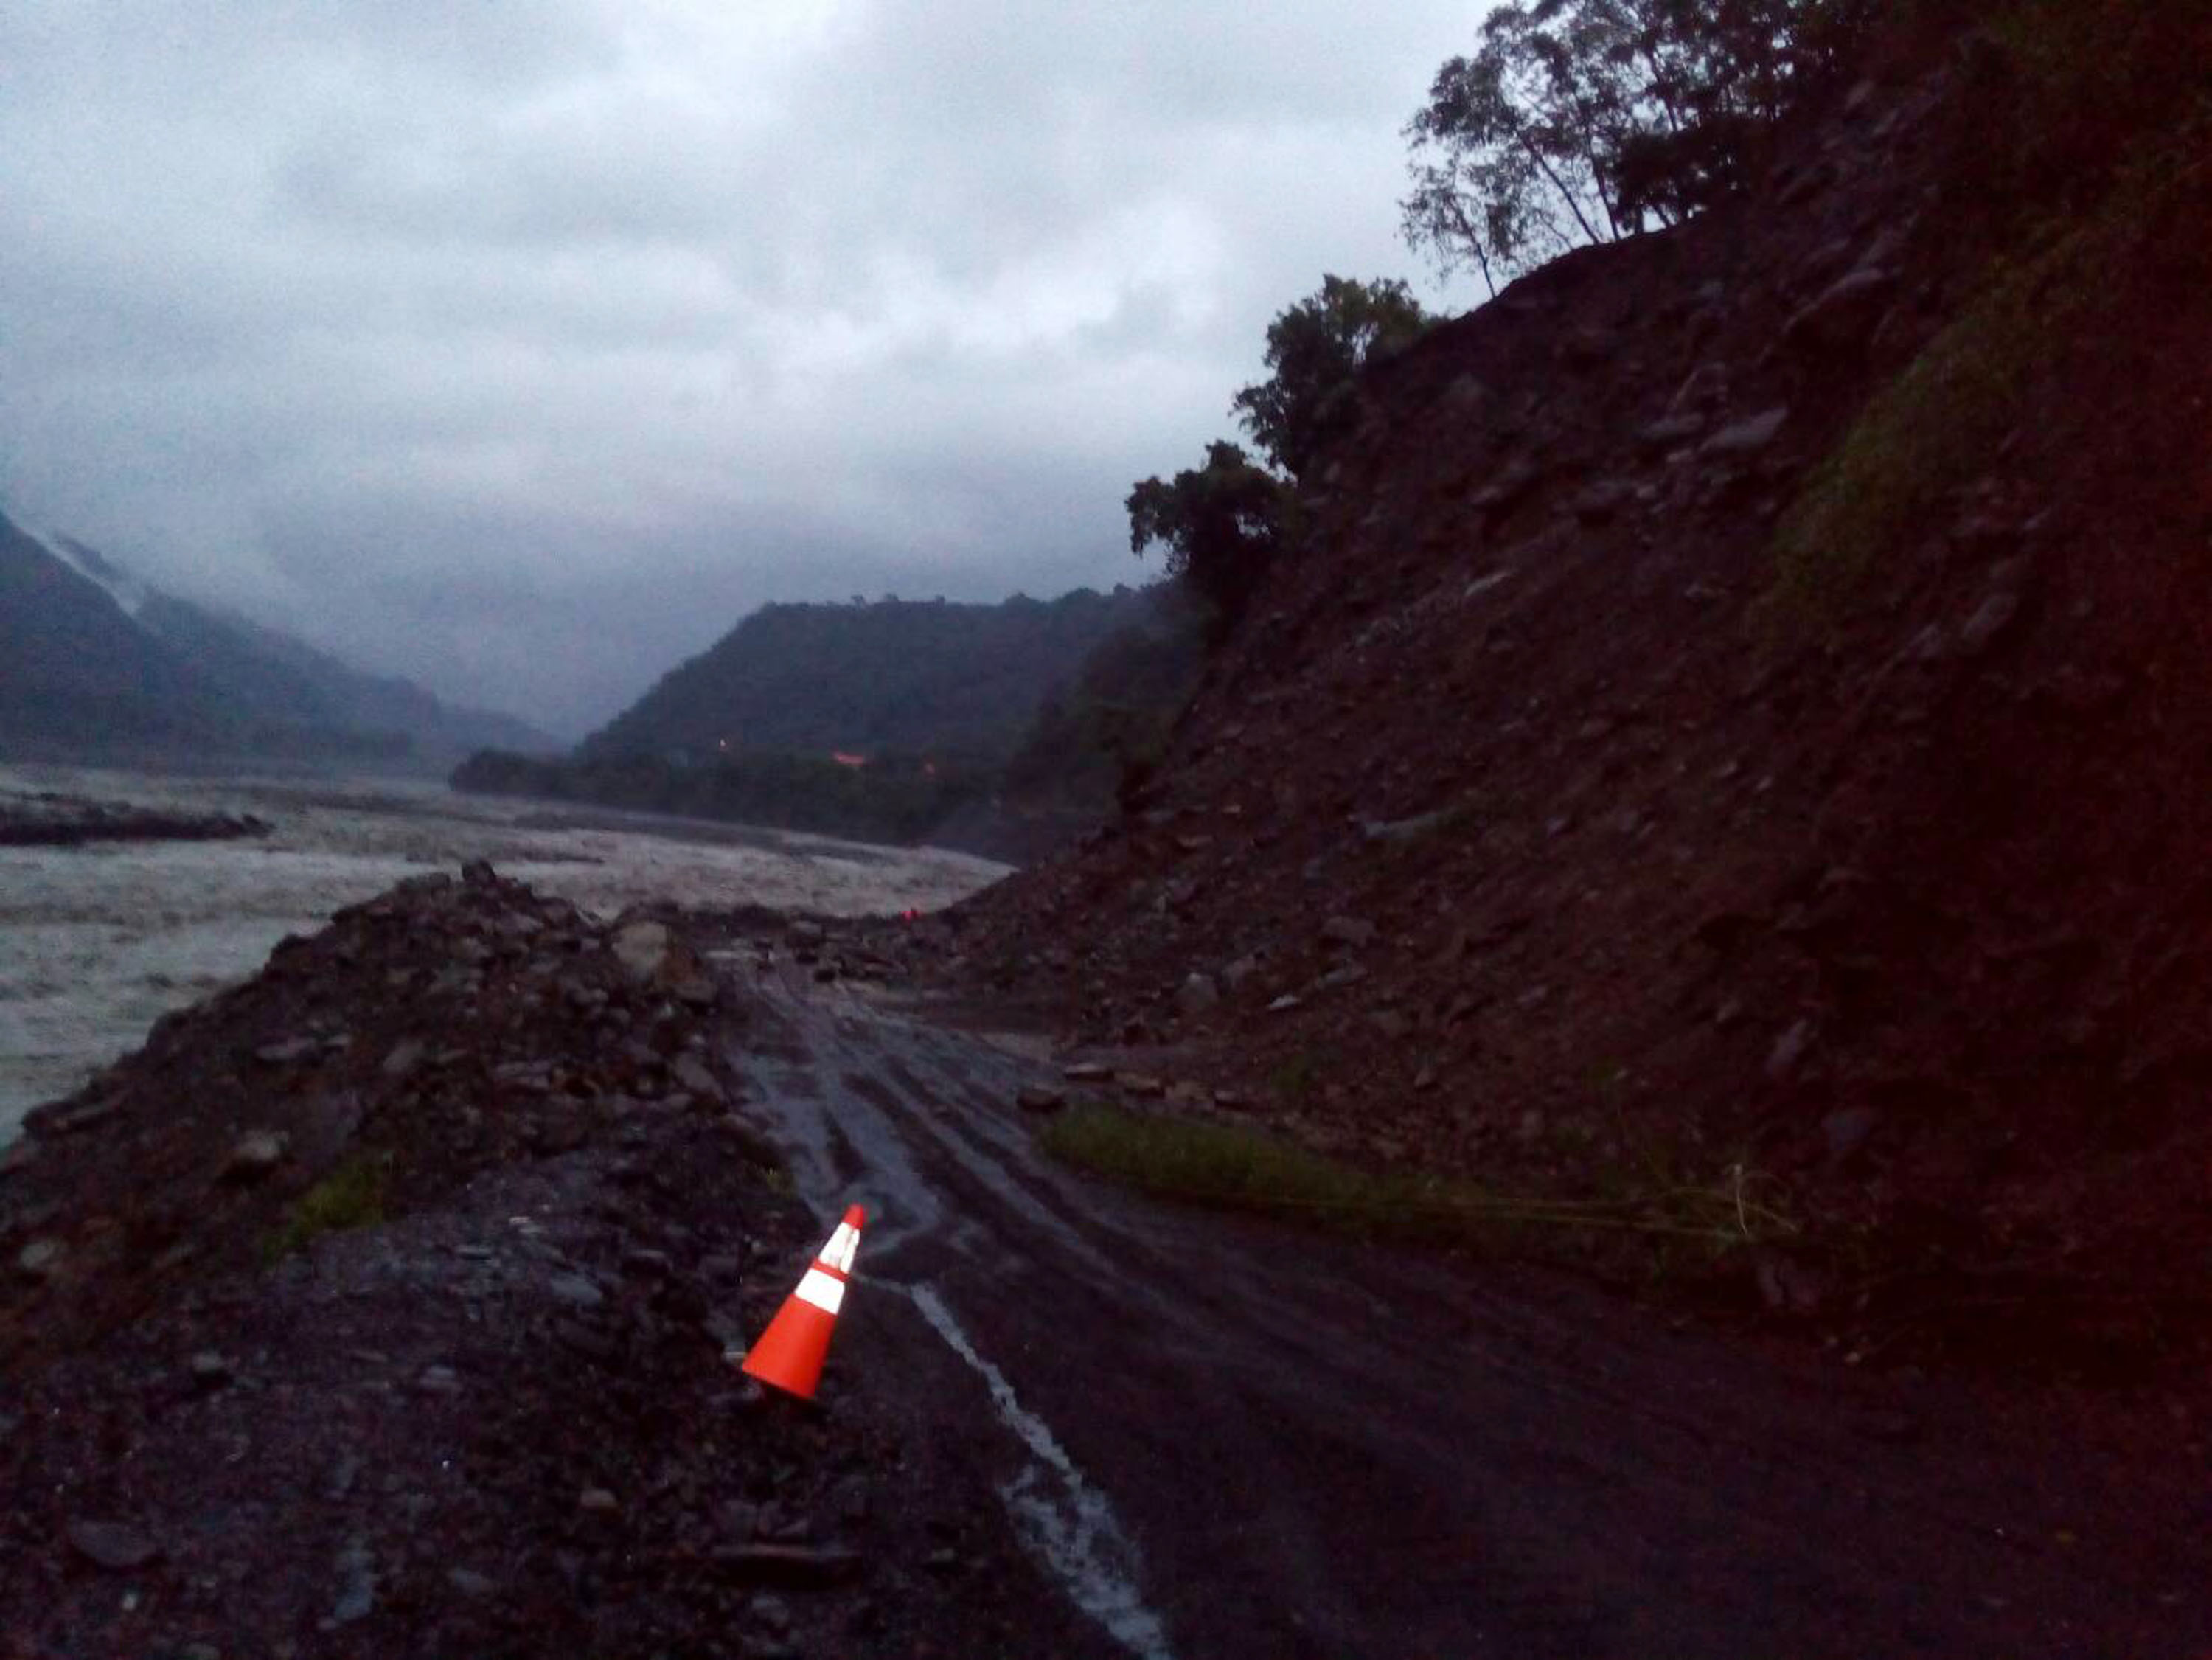 Road in Taoyuan, Kaohsiung City, interrupted by landslides.